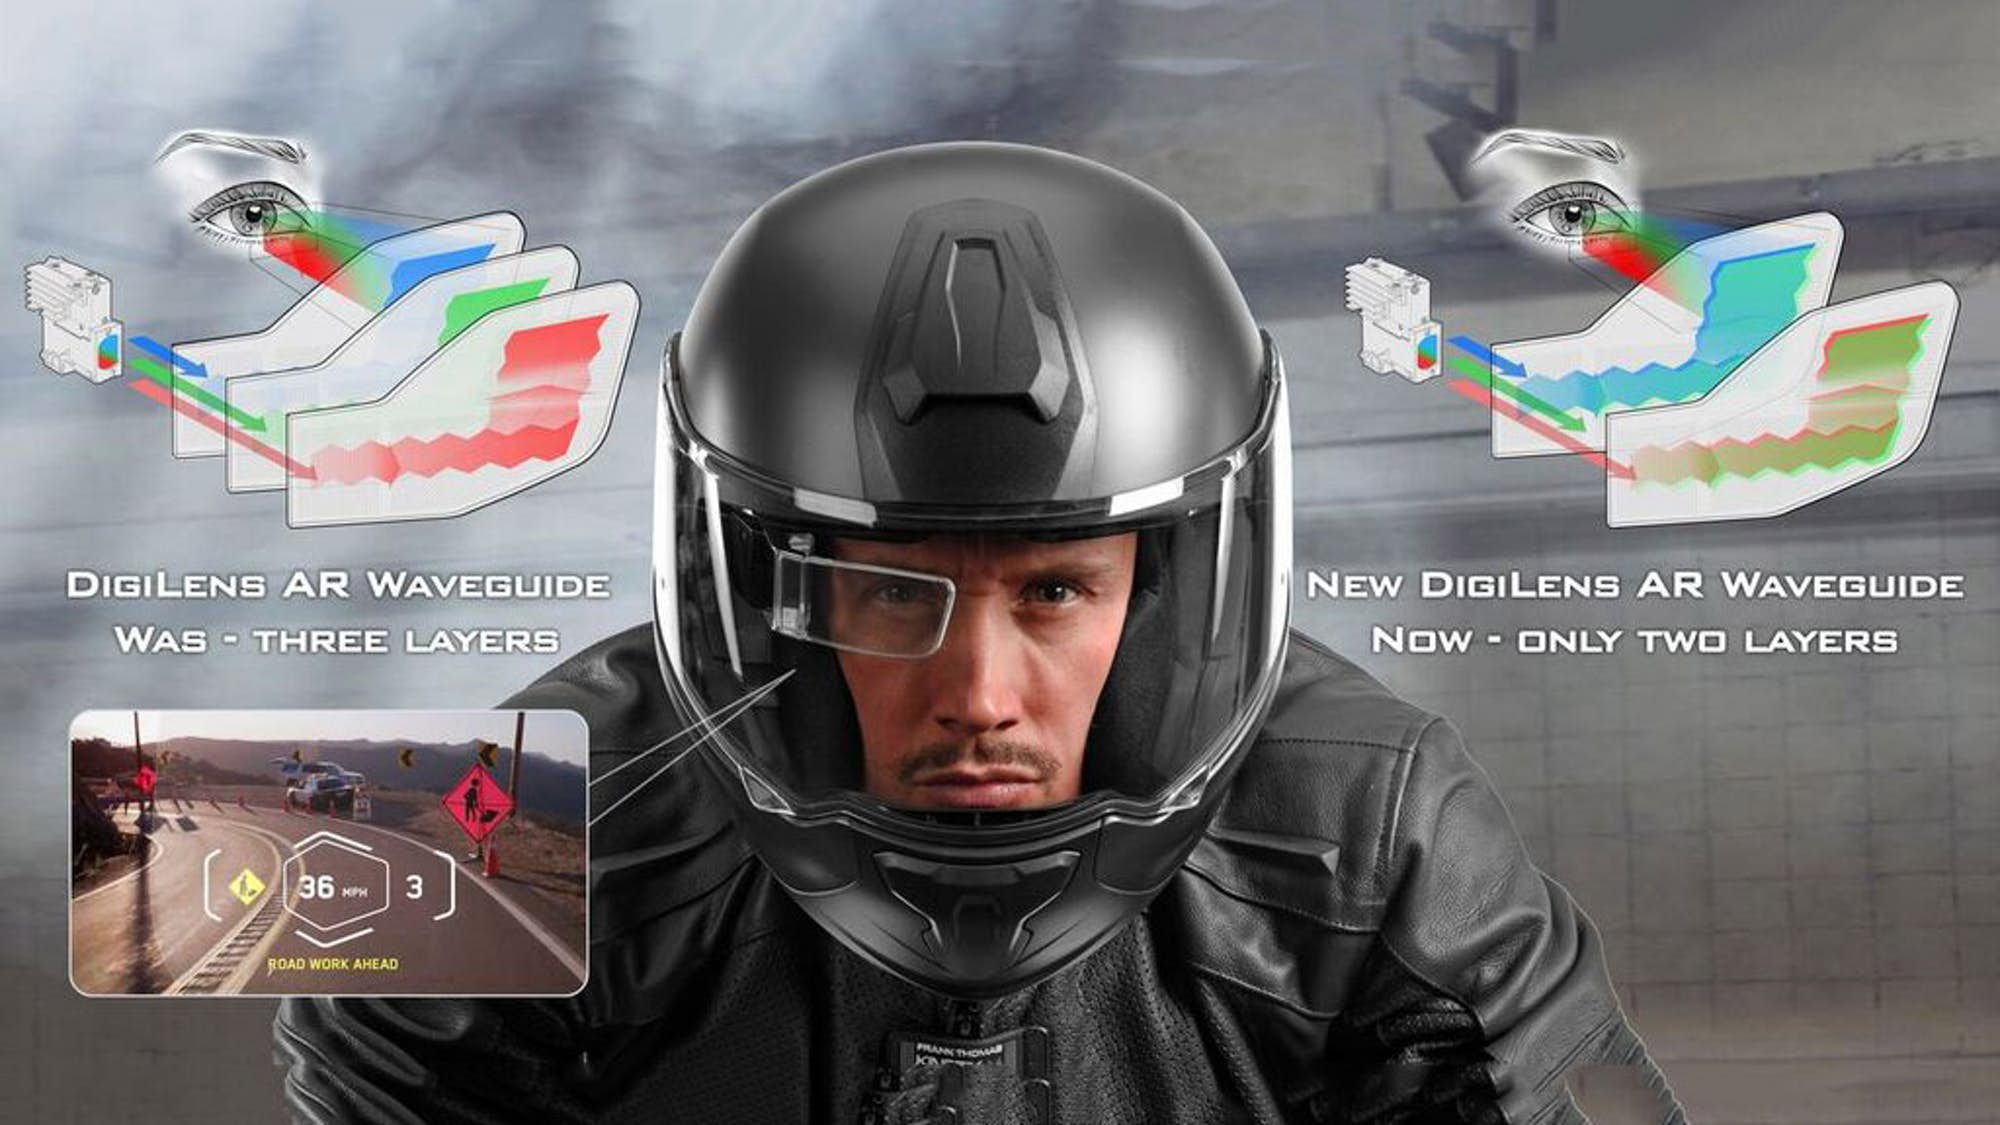 casco inteligente motos digilens